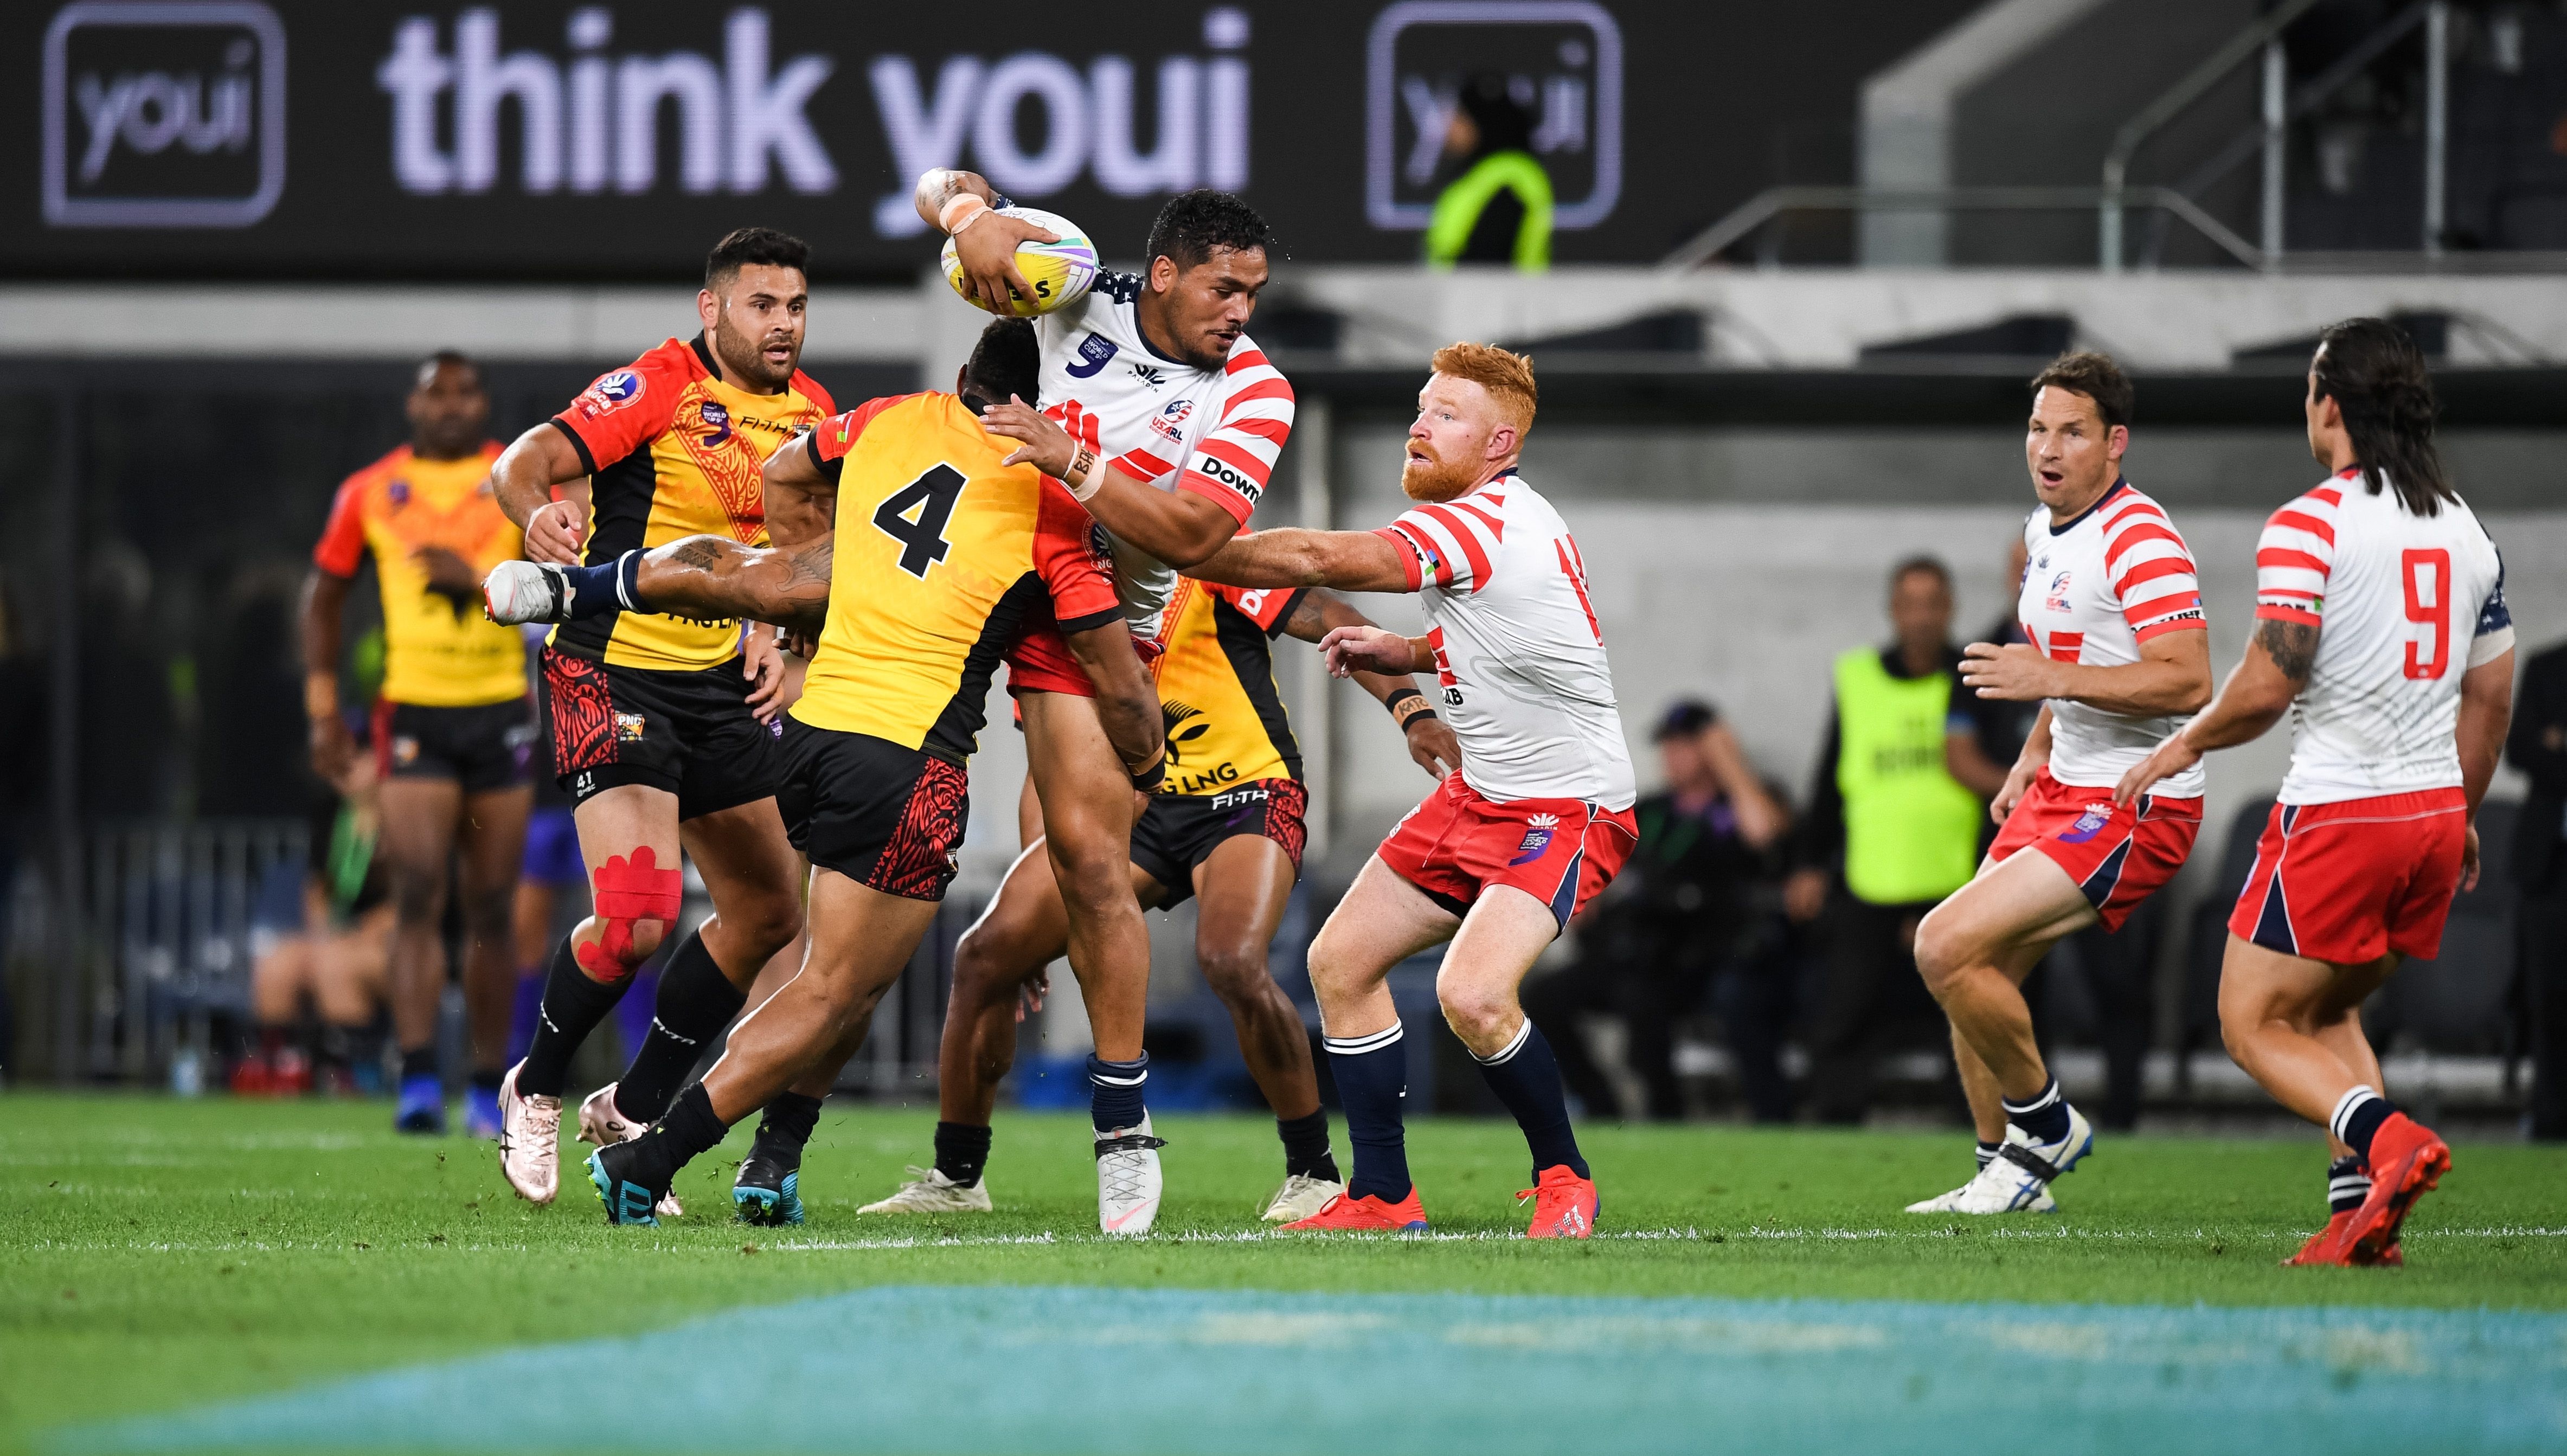 USA lose but young NRL star gives Hawks a boost